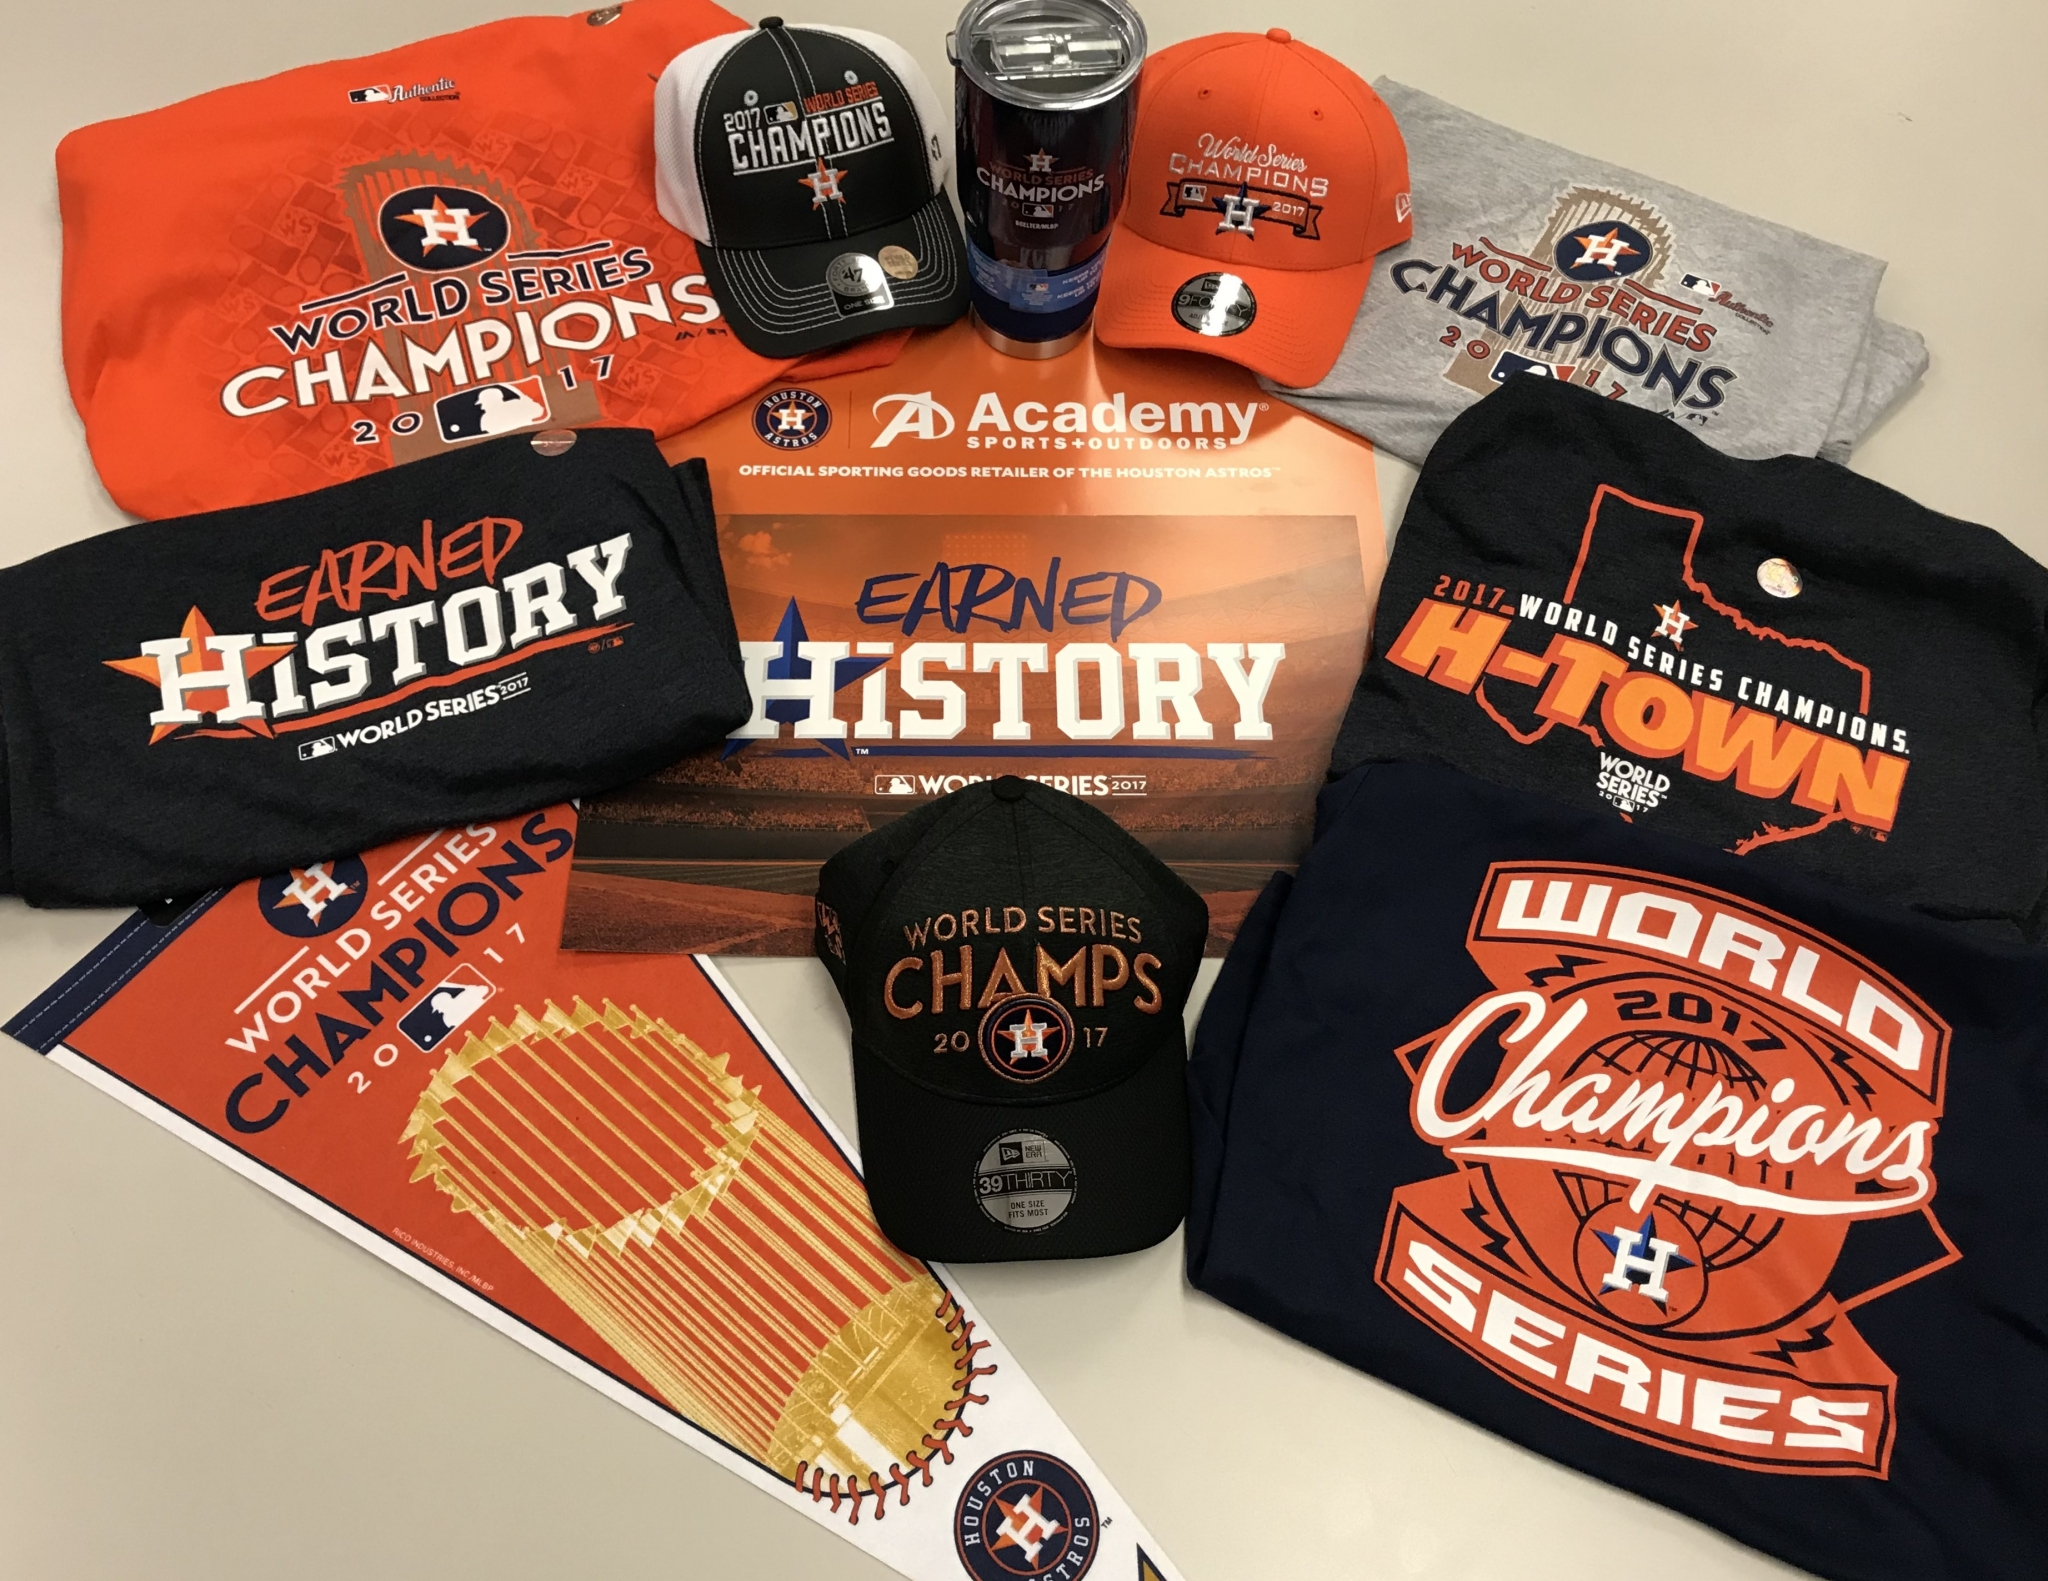 bb103993fb3 Get a peek at the Houston Astros World Series Championship gear you can own  - Houston Chronicle